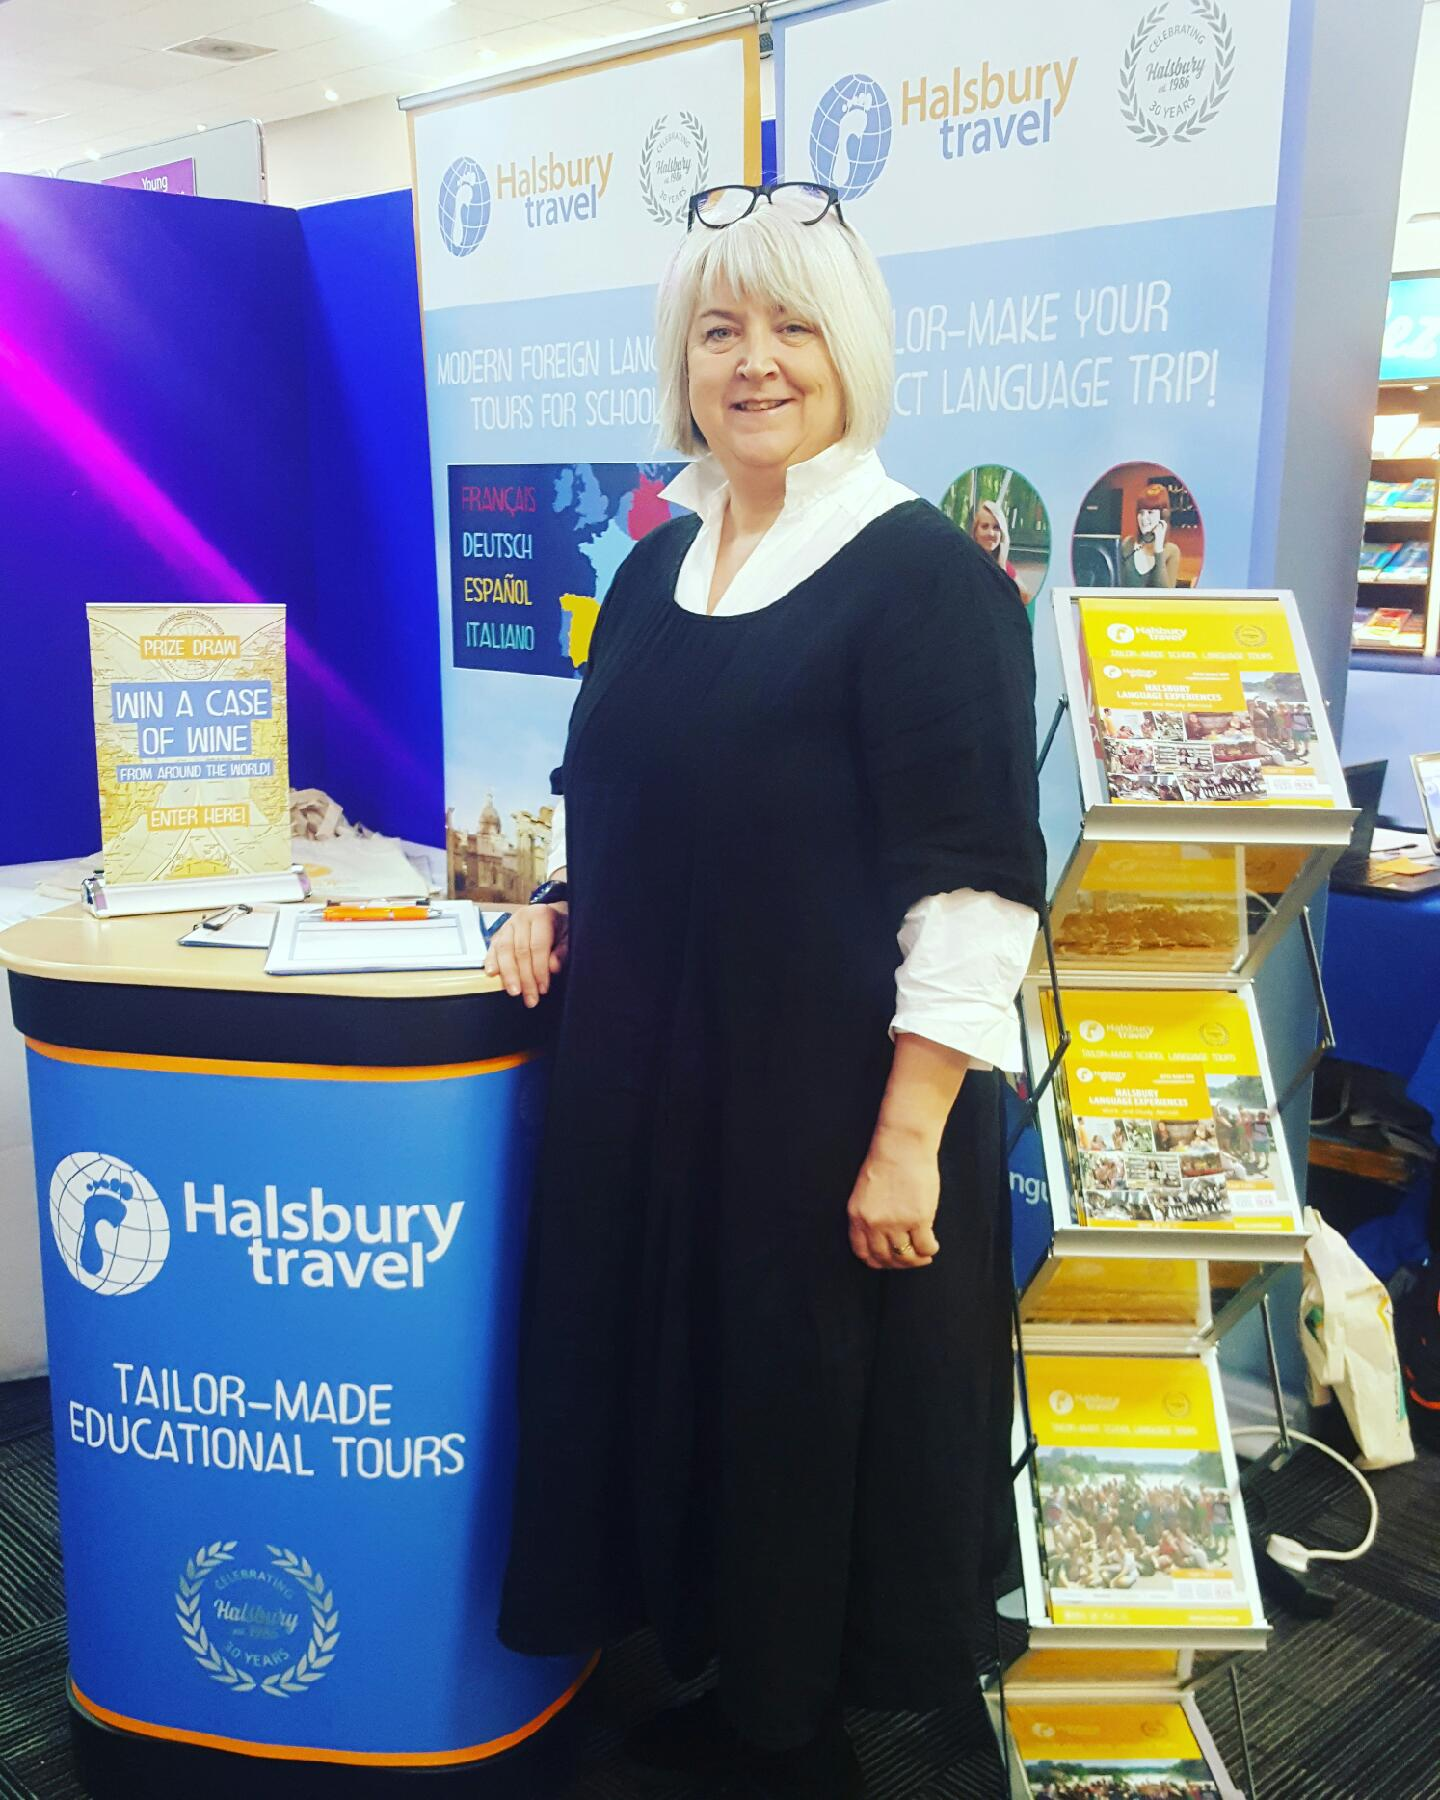 Going to @ALL4language #LW2017 today? Come and see us on stand 25 to talk about our language tours and enter our prize draw! https://t.co/ykG3jaQZaf